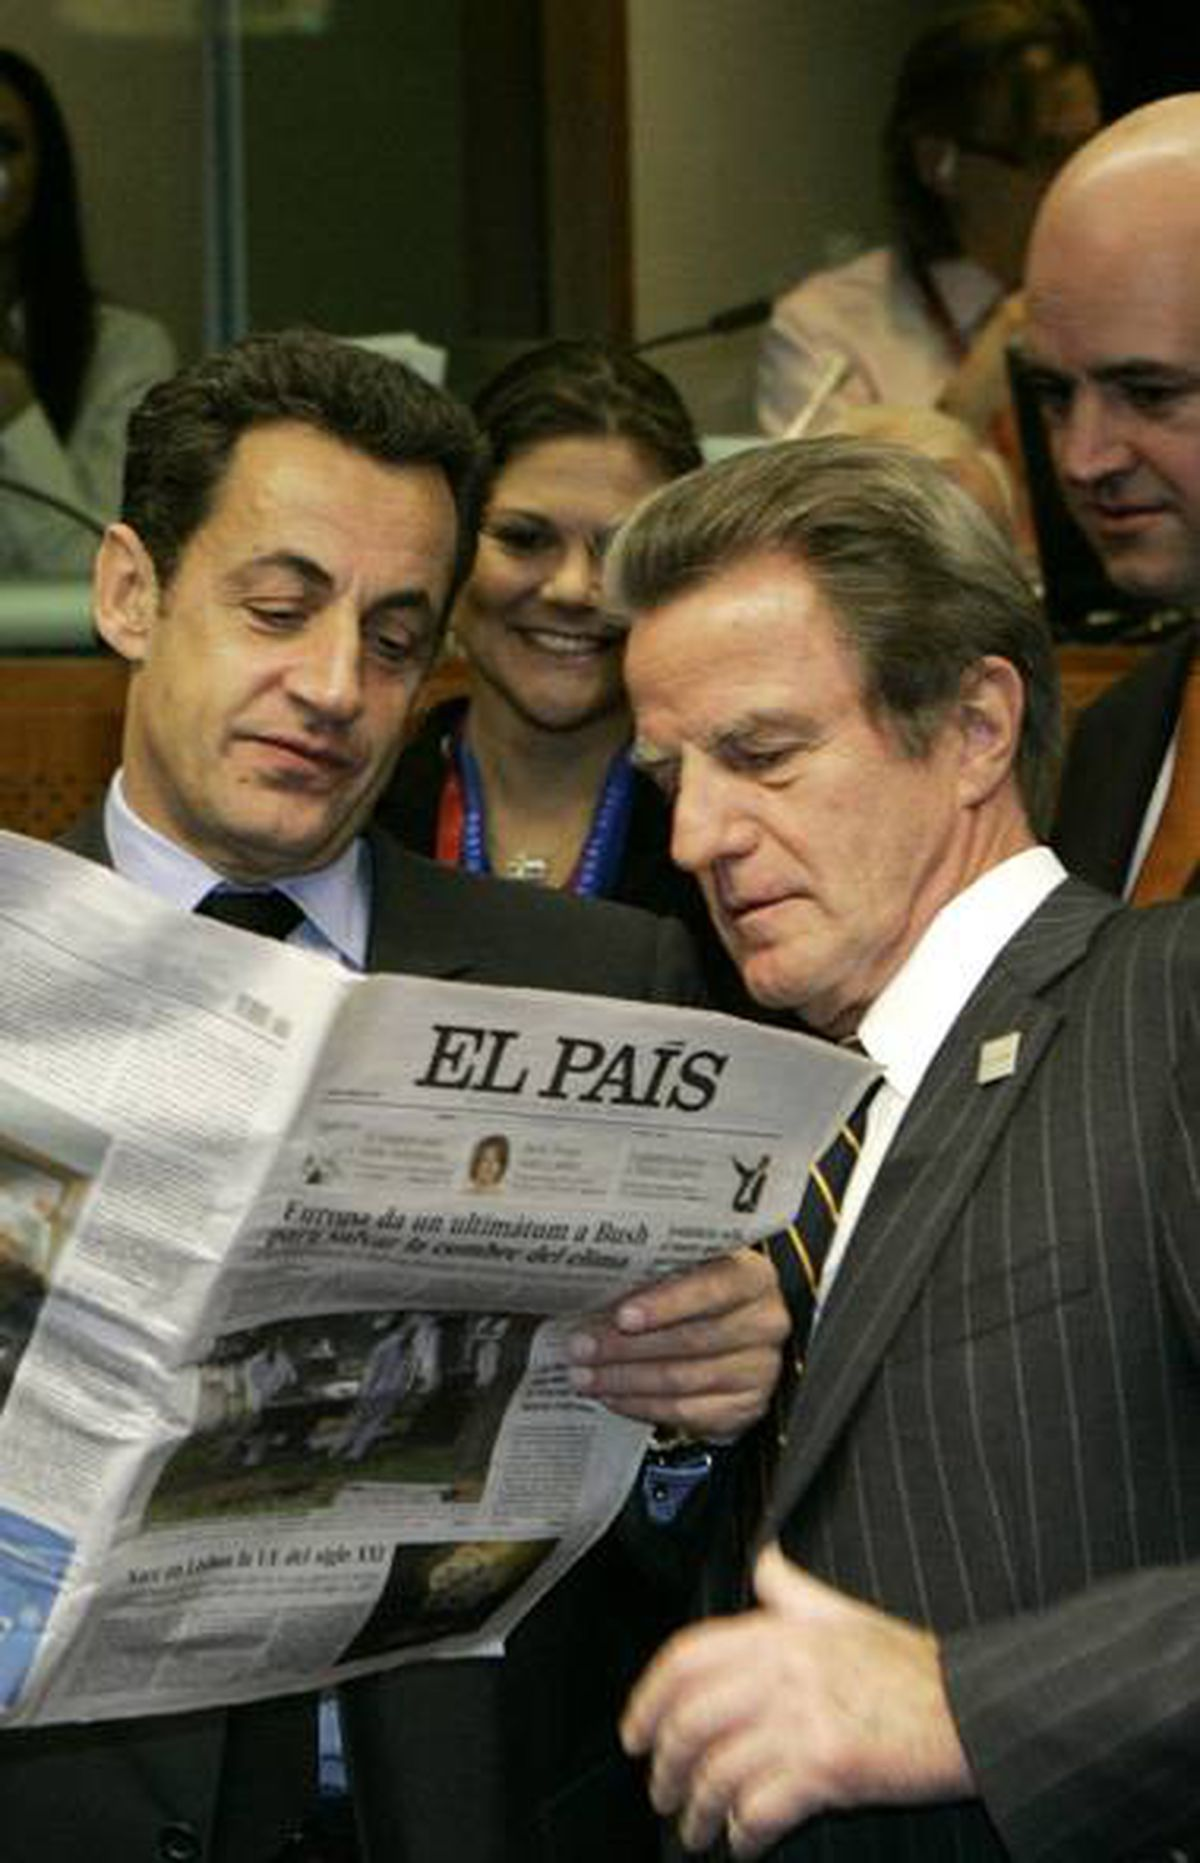 FRANCE/CANADA: Leaked U.S. diplomatic cables show that Bernard Kouchner, Nicolas Sarkozy's foreign minister until three weeks ago, personally asked Hillary Clinton to review the Omar Khadr case in a 2009 meeting. The document shows that while Mr. Kouchner was doing this, the Canadian government remained silent on the issue.